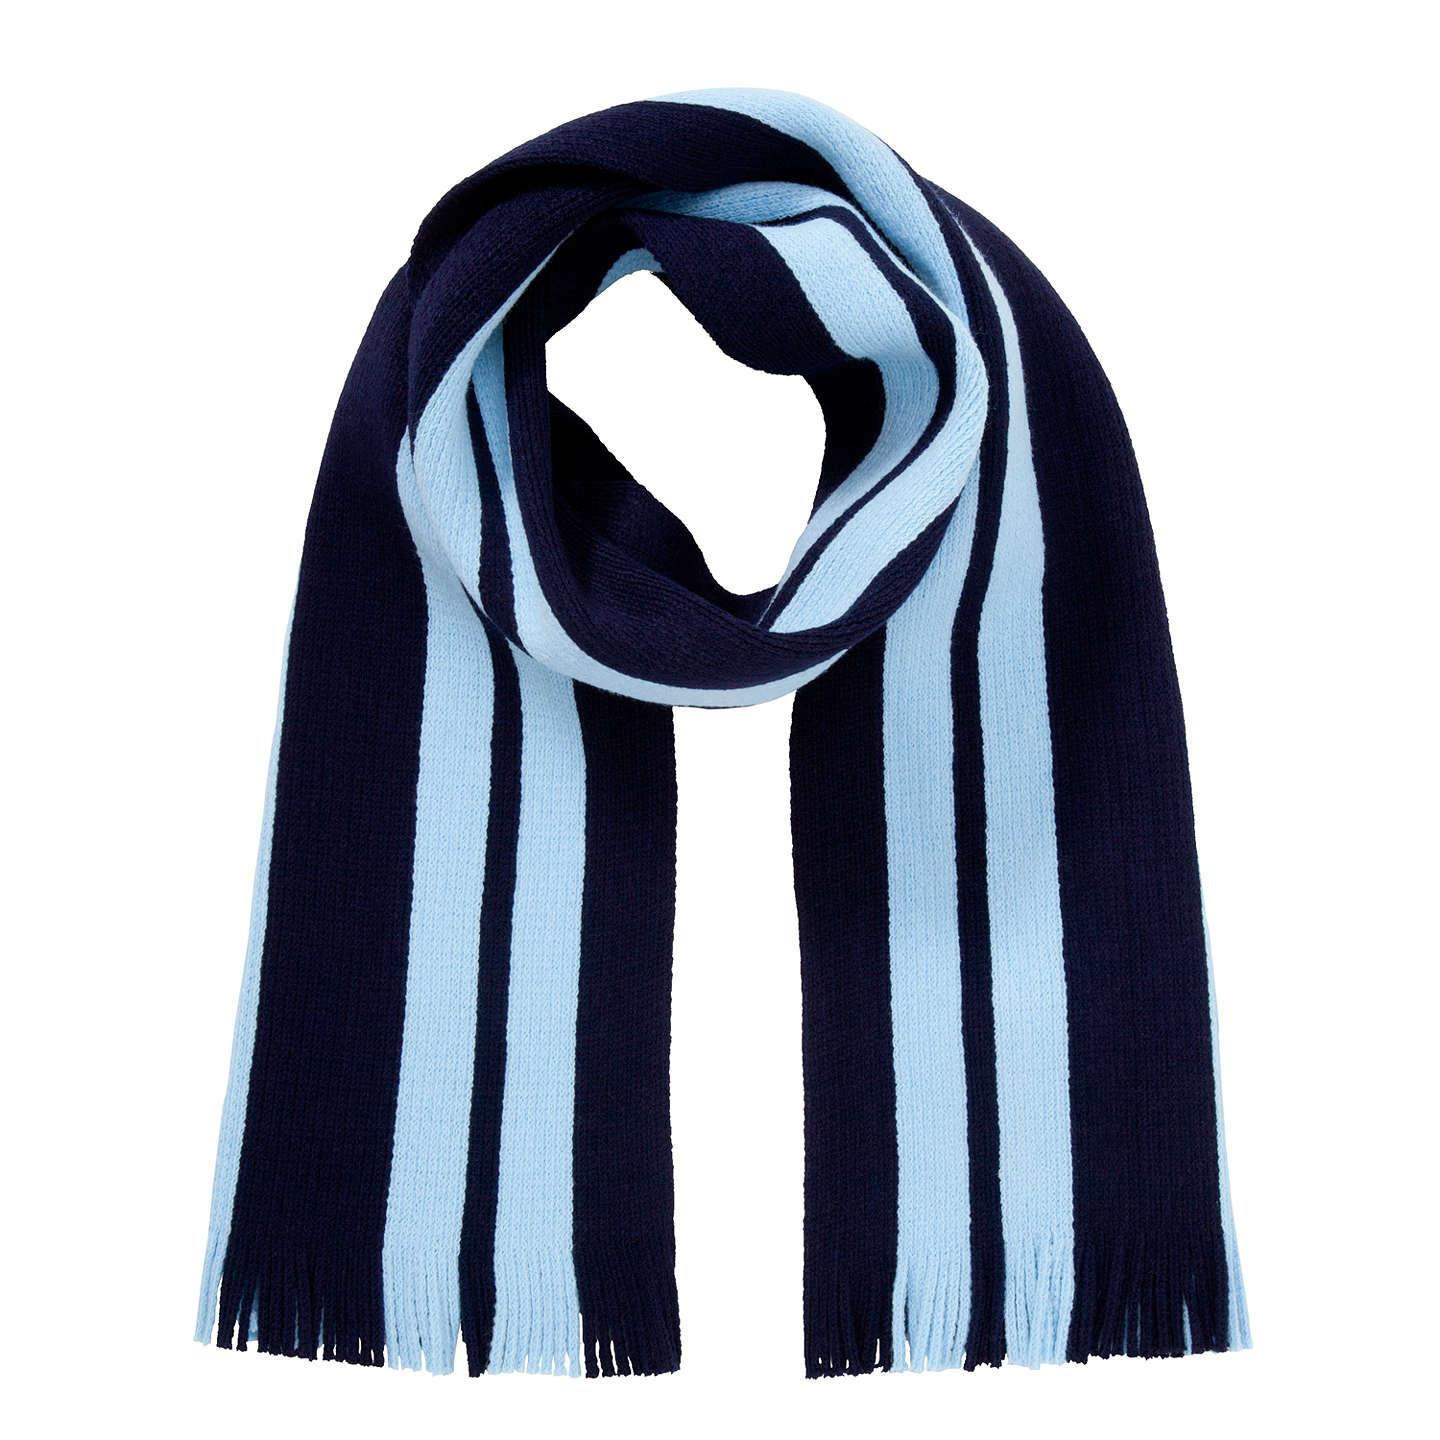 BuyLa Scuola Italiana A Londra Knitted Scarf, Navy/Sky Online at johnlewis.com